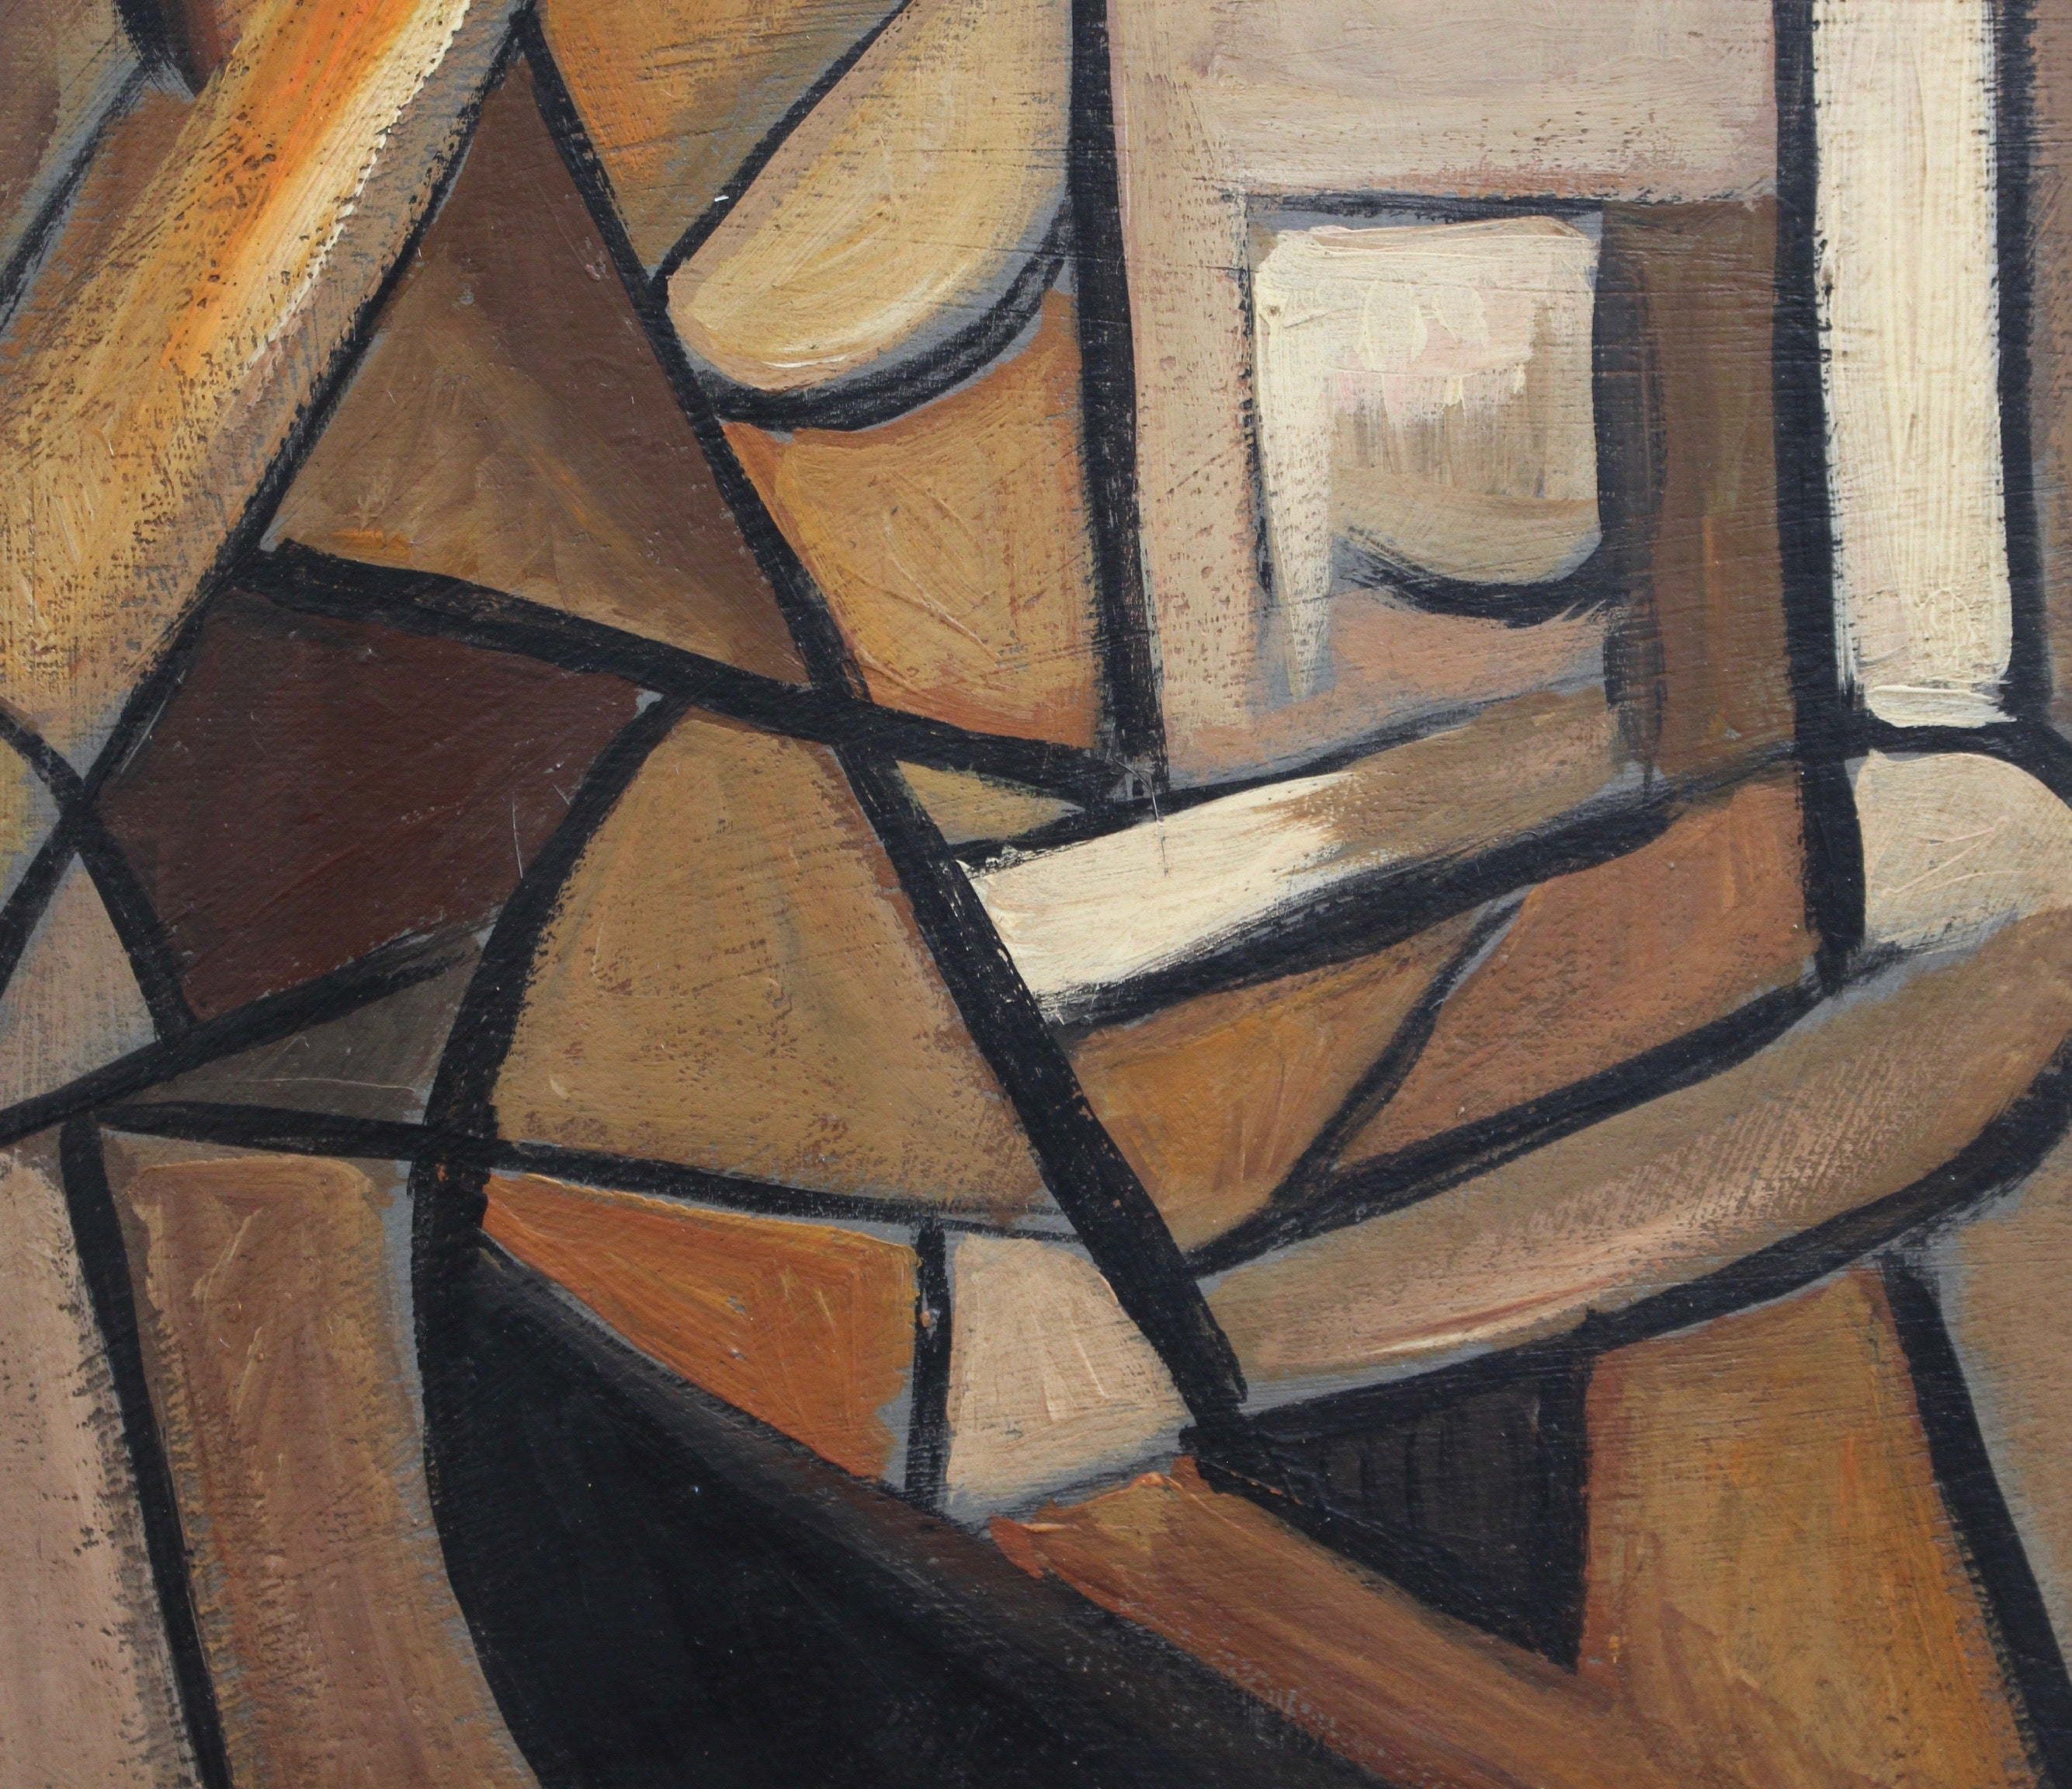 'Abstract Nude in Mahogany' by P. Charon, French School (circa 1950s-60s)